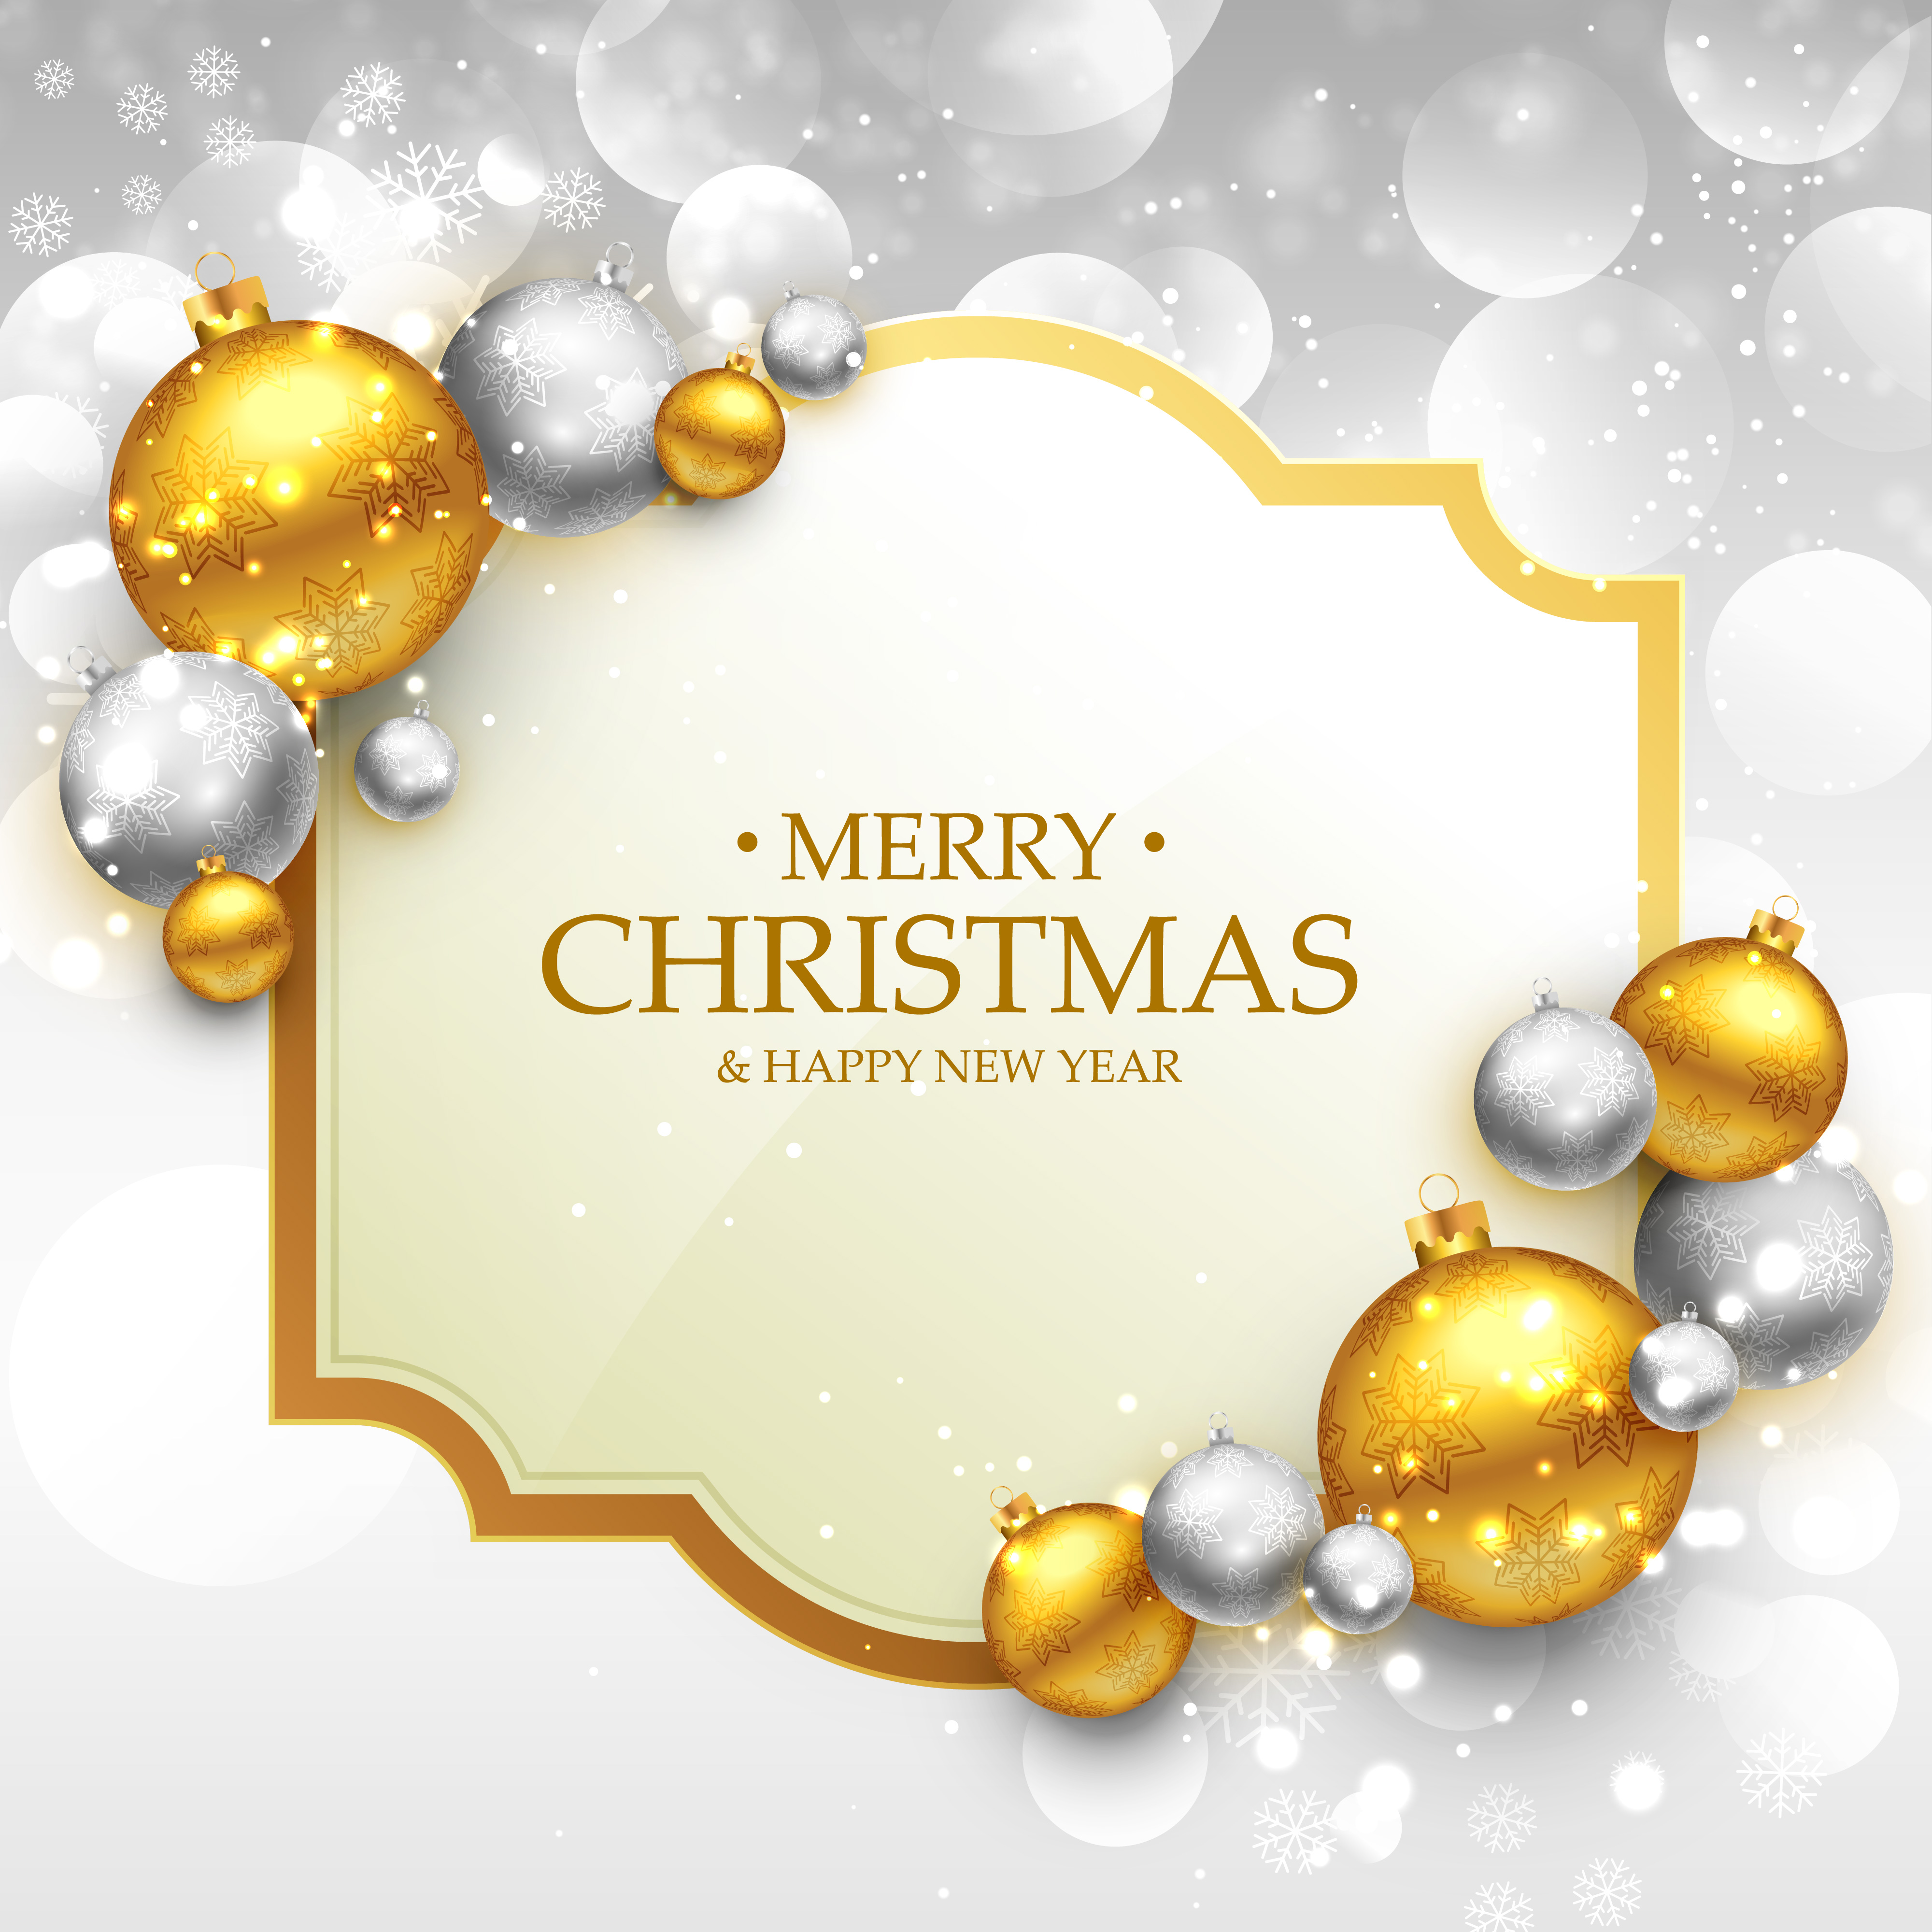 Merry Christmas Greeting Card Template With Gold And Silver Chri